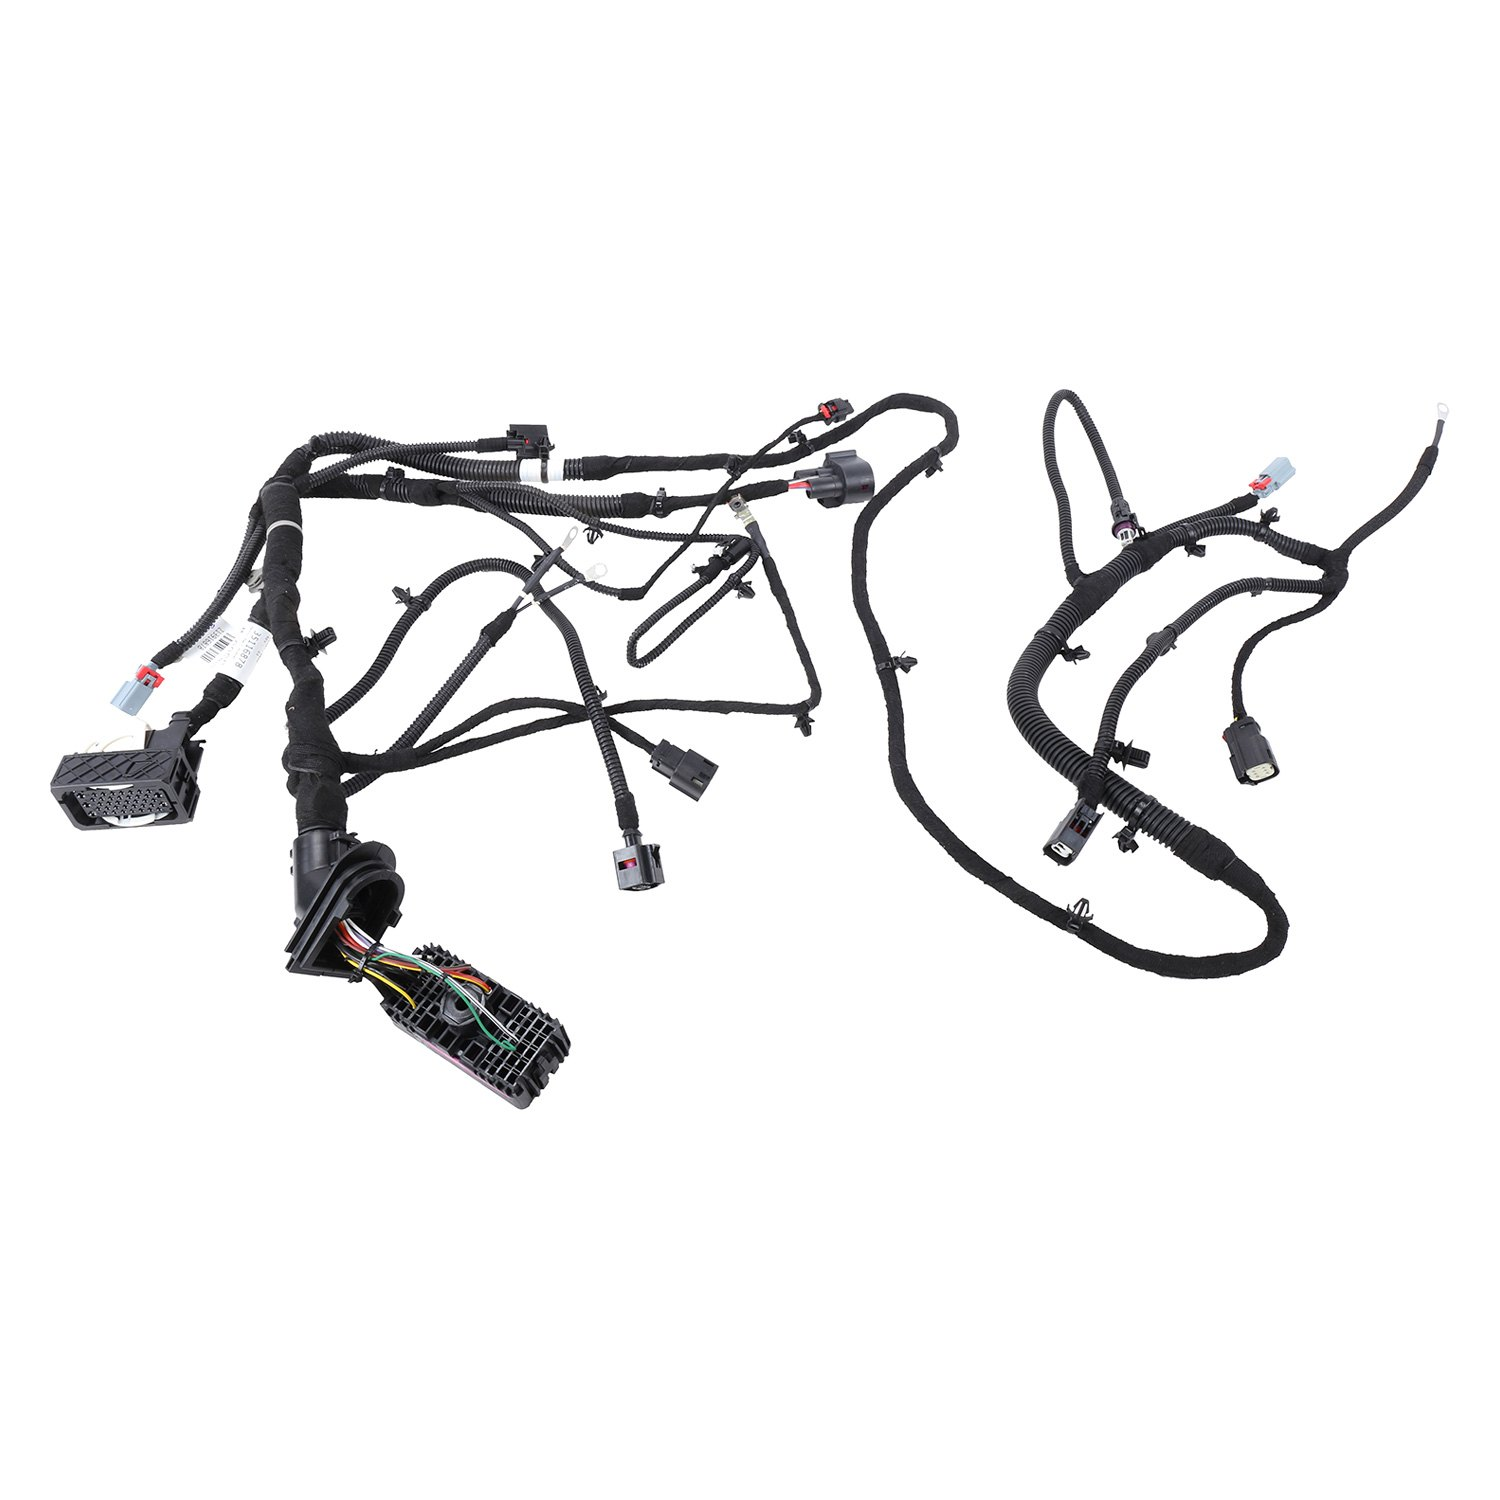 For Chevy Cruze 19 Acdelco Genuine Gm Parts